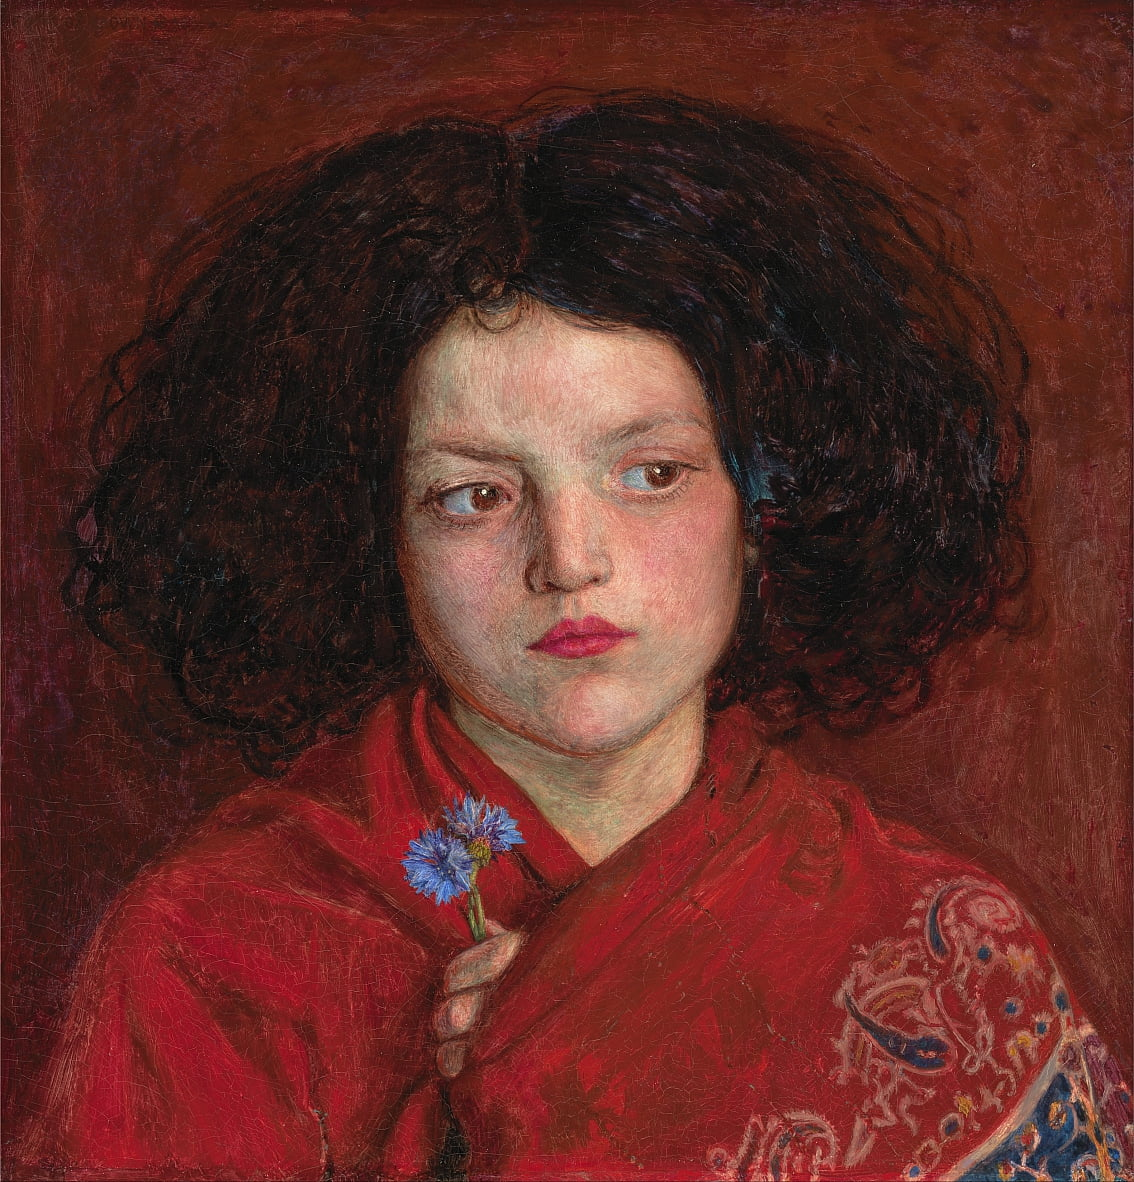 La ragazza irlandese da Ford Madox Brown